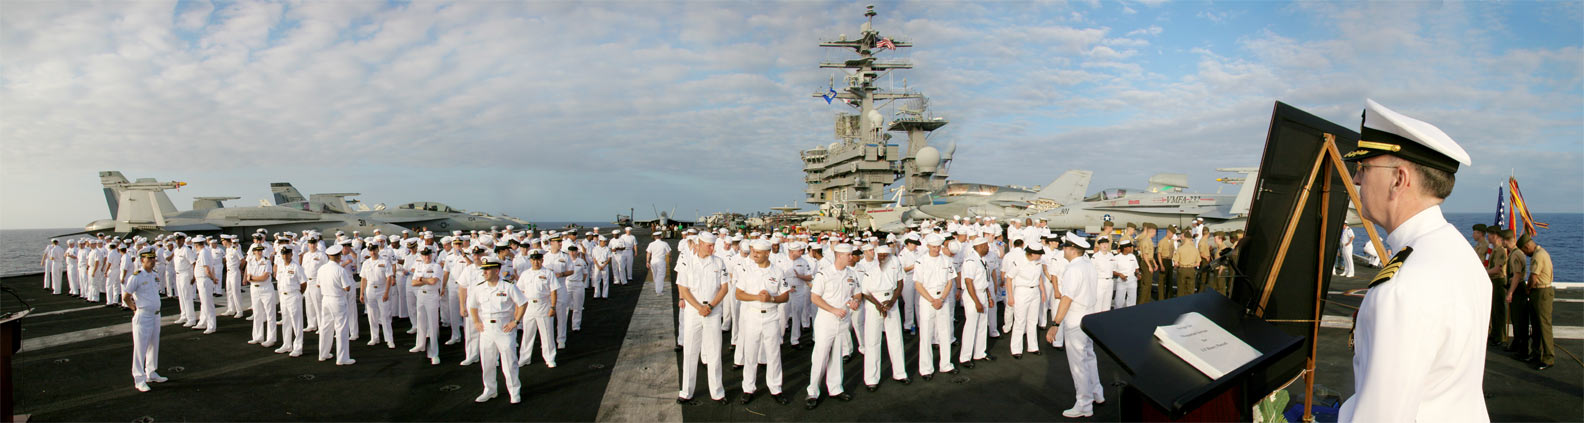 On location filming {quote}Stealth{quote} - USS Nimitz (CVN-68) at sea 100 miles southwest of Hawaii.